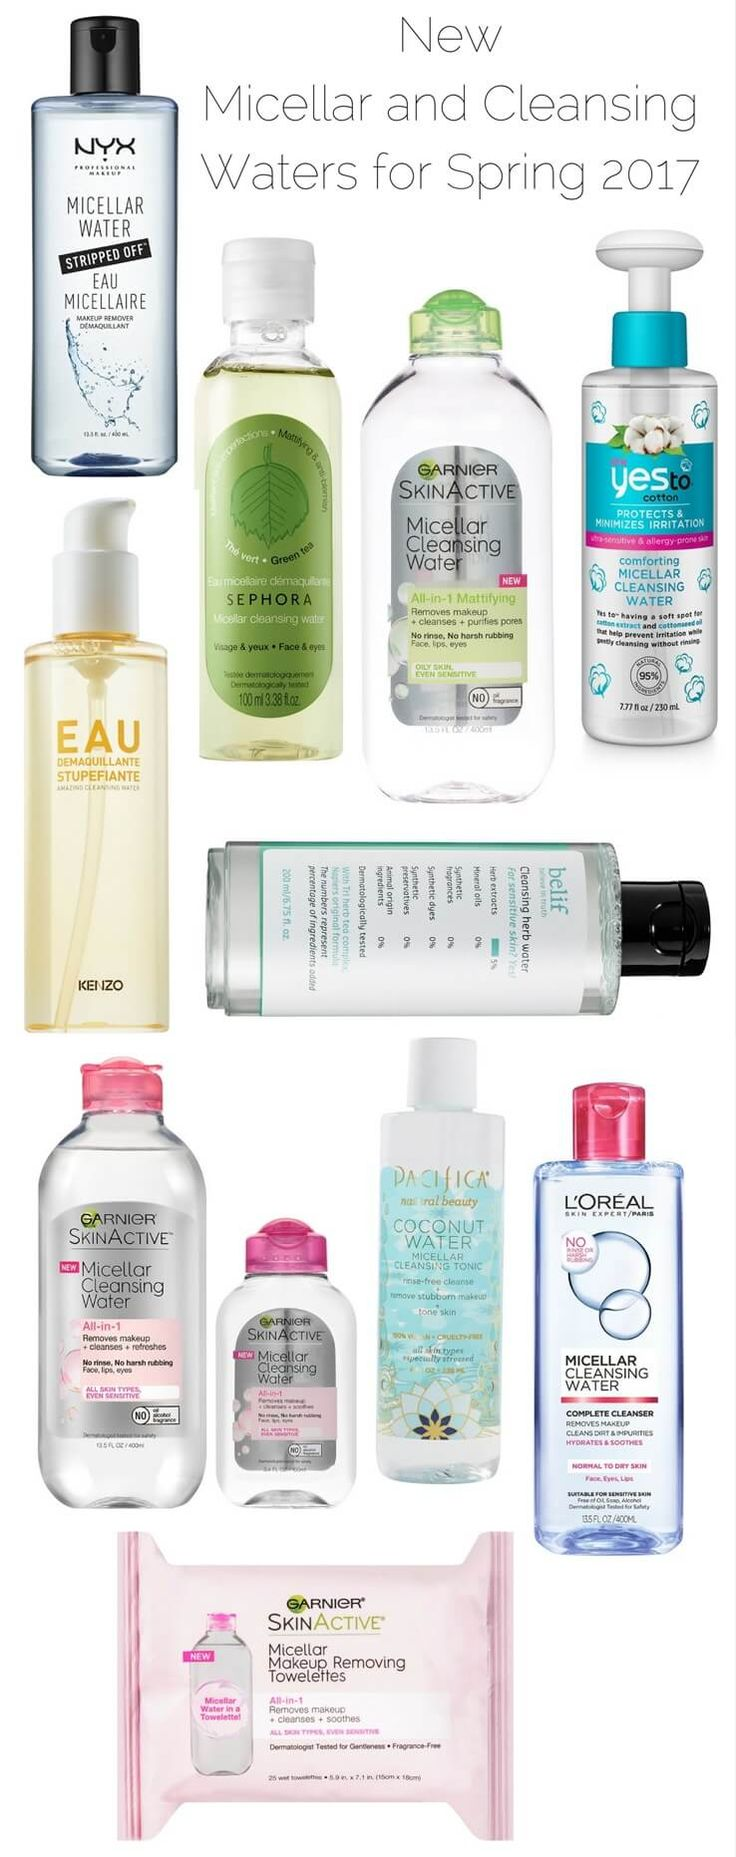 I admit I'm not a huge micellar water fan unless I'm in a hurry. My cleansing routine is rather long but I embrace it because my skin looks great when I take good care of. I never feel fully clean when I use solely a micellar water. So, typically if I'm home late and I'm […] The post 10 New Micellar and Cleansing Waters Available for Spring 2017 appeared first on Musings of a Muse. :: Beauty